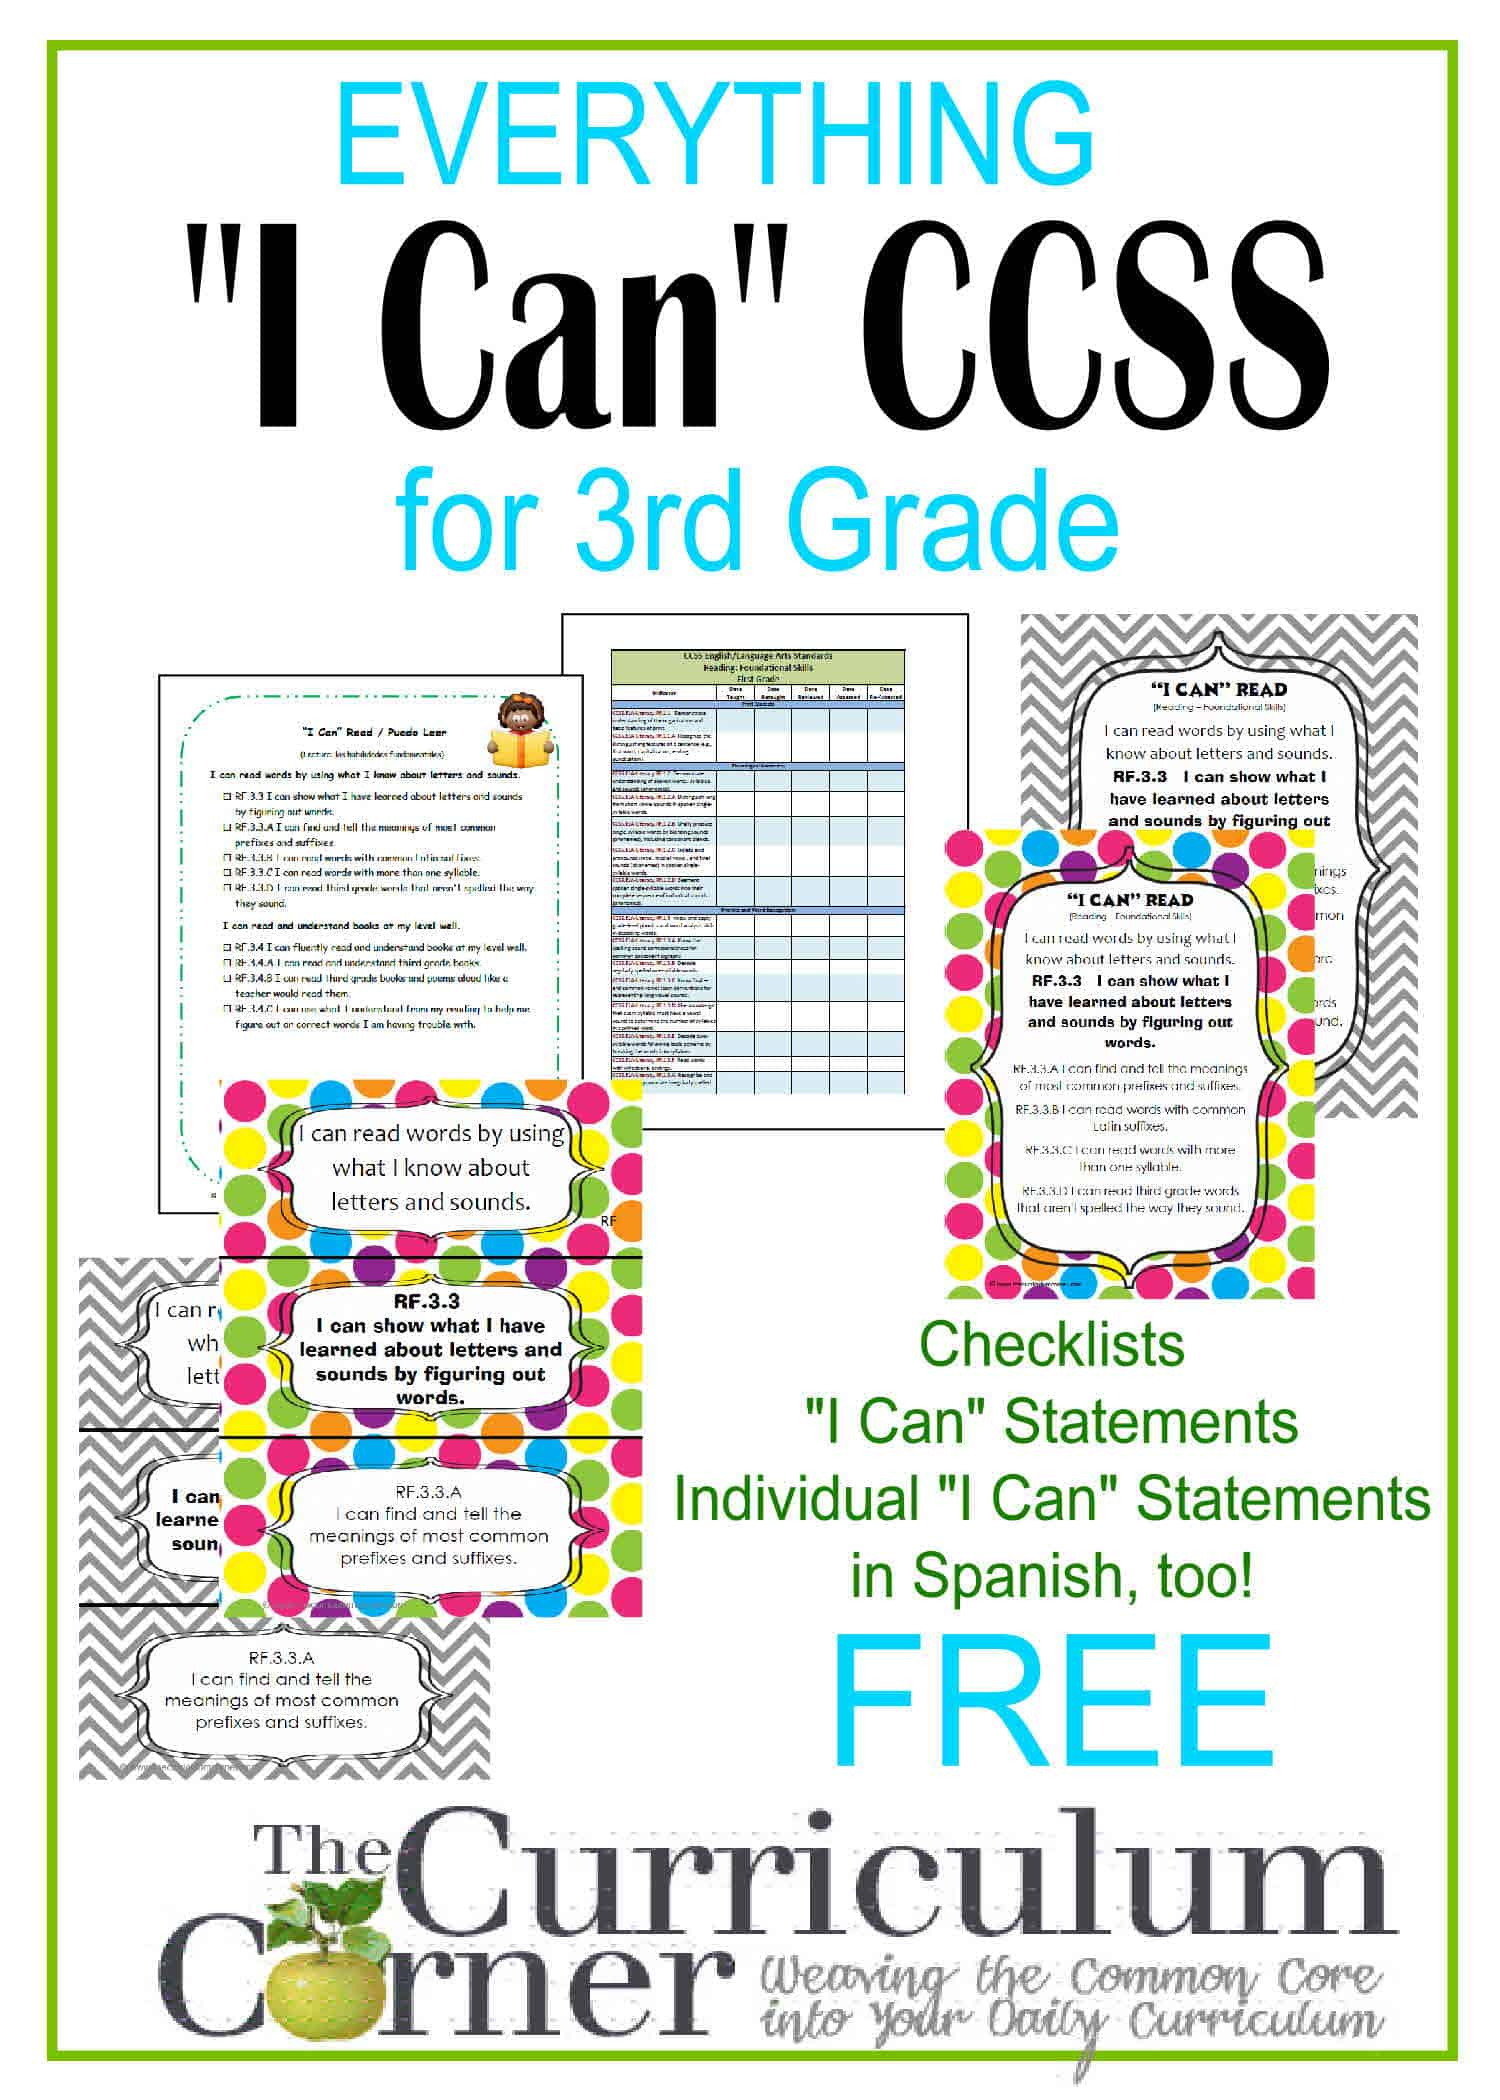 Worksheet 3rd Grade Level classroom management archives page 9 of 21 the curriculum everything common core for 3rd grade